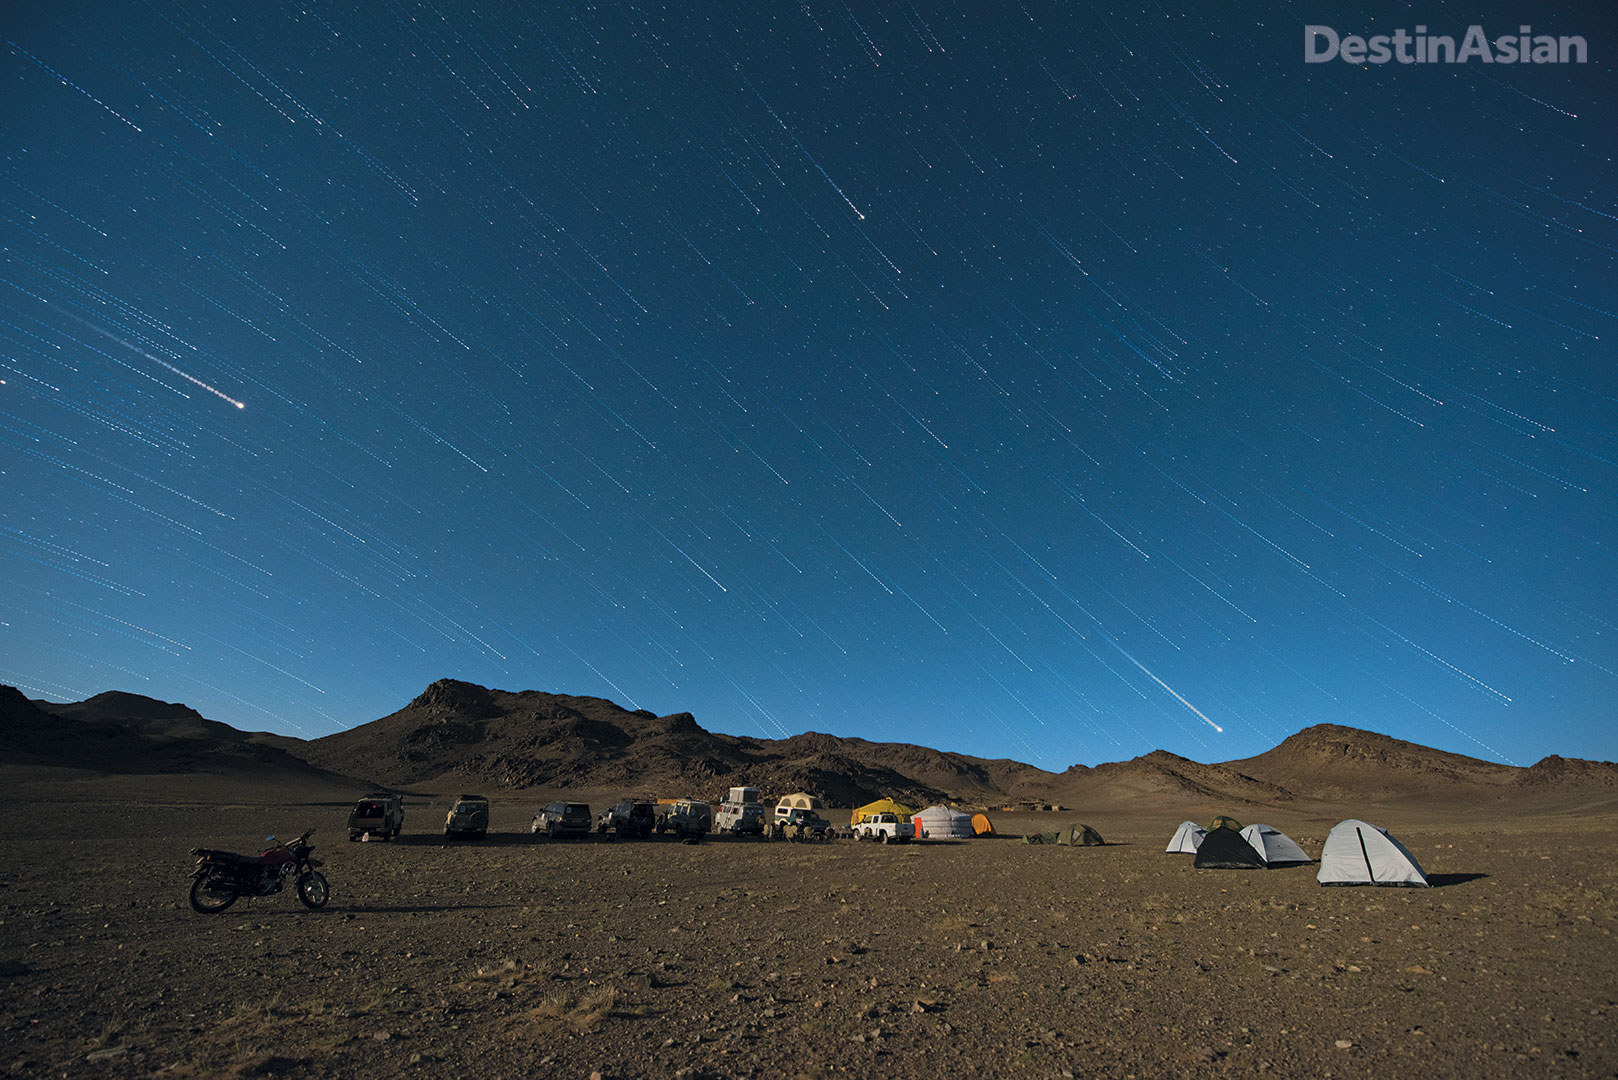 Camping under the stars deep into the wilderness of Mongolia's southernmost province, Ömnögovi.